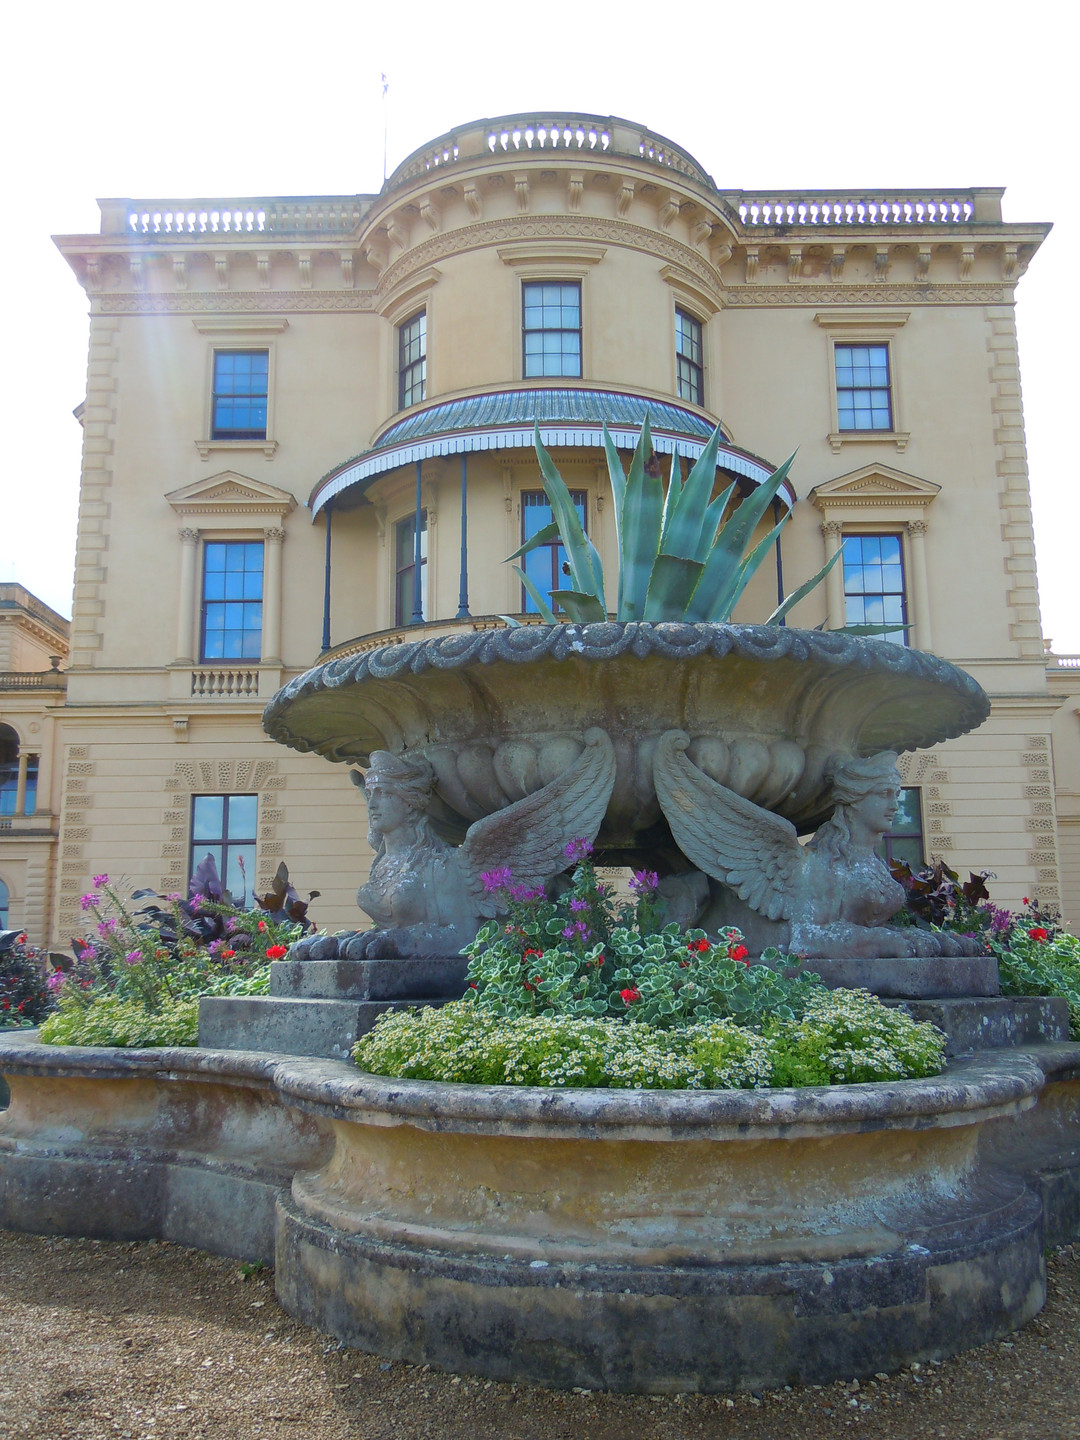 Osborne house, former home of Queen Victoria & Prince Albert